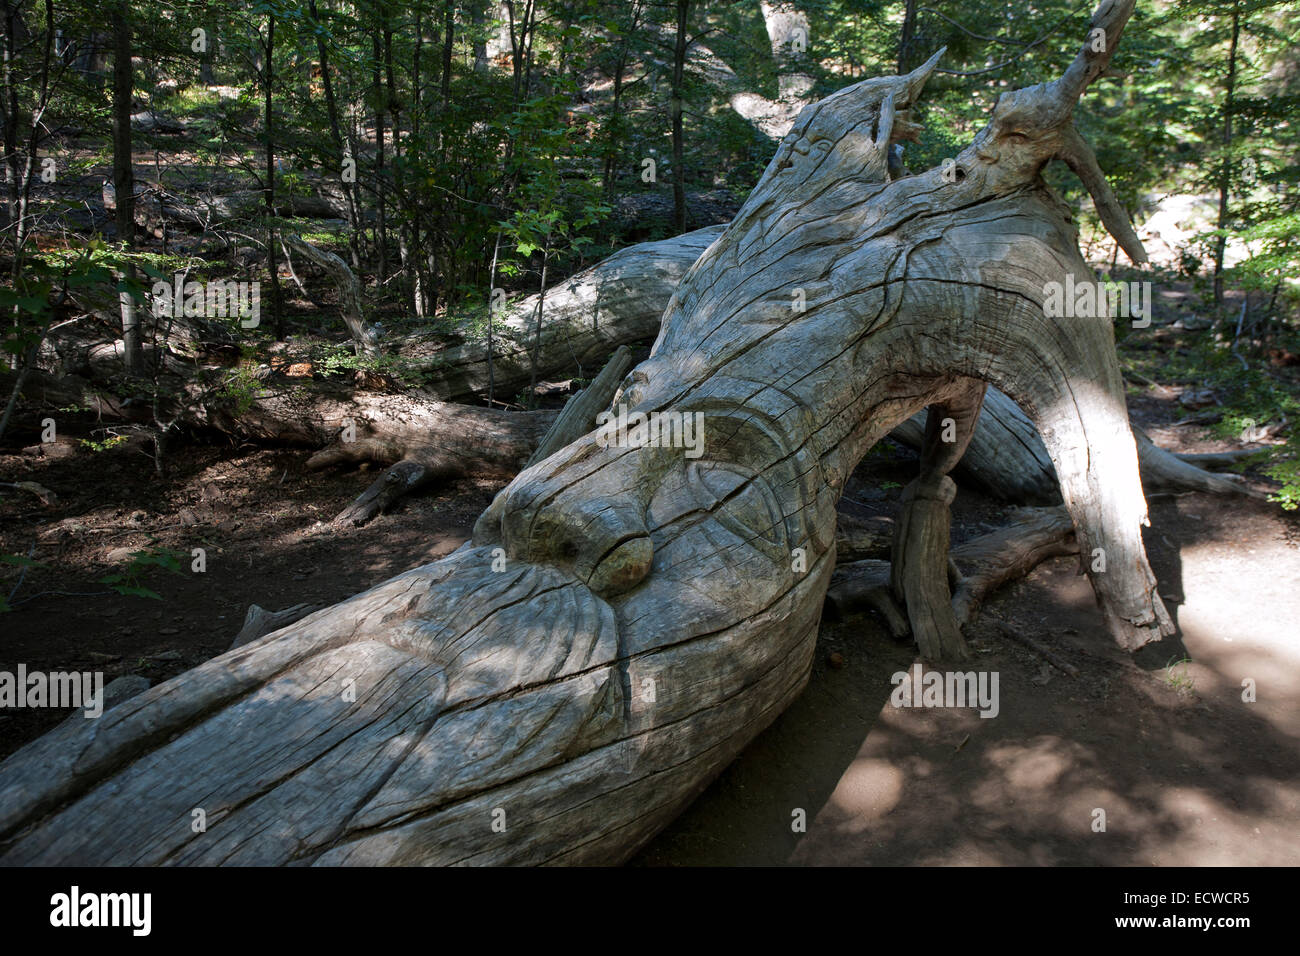 Carved Tree In The Shape Of An Elf El Bosque Tallado The Carved Forest El Bolson Argentina Stock Photo Alamy